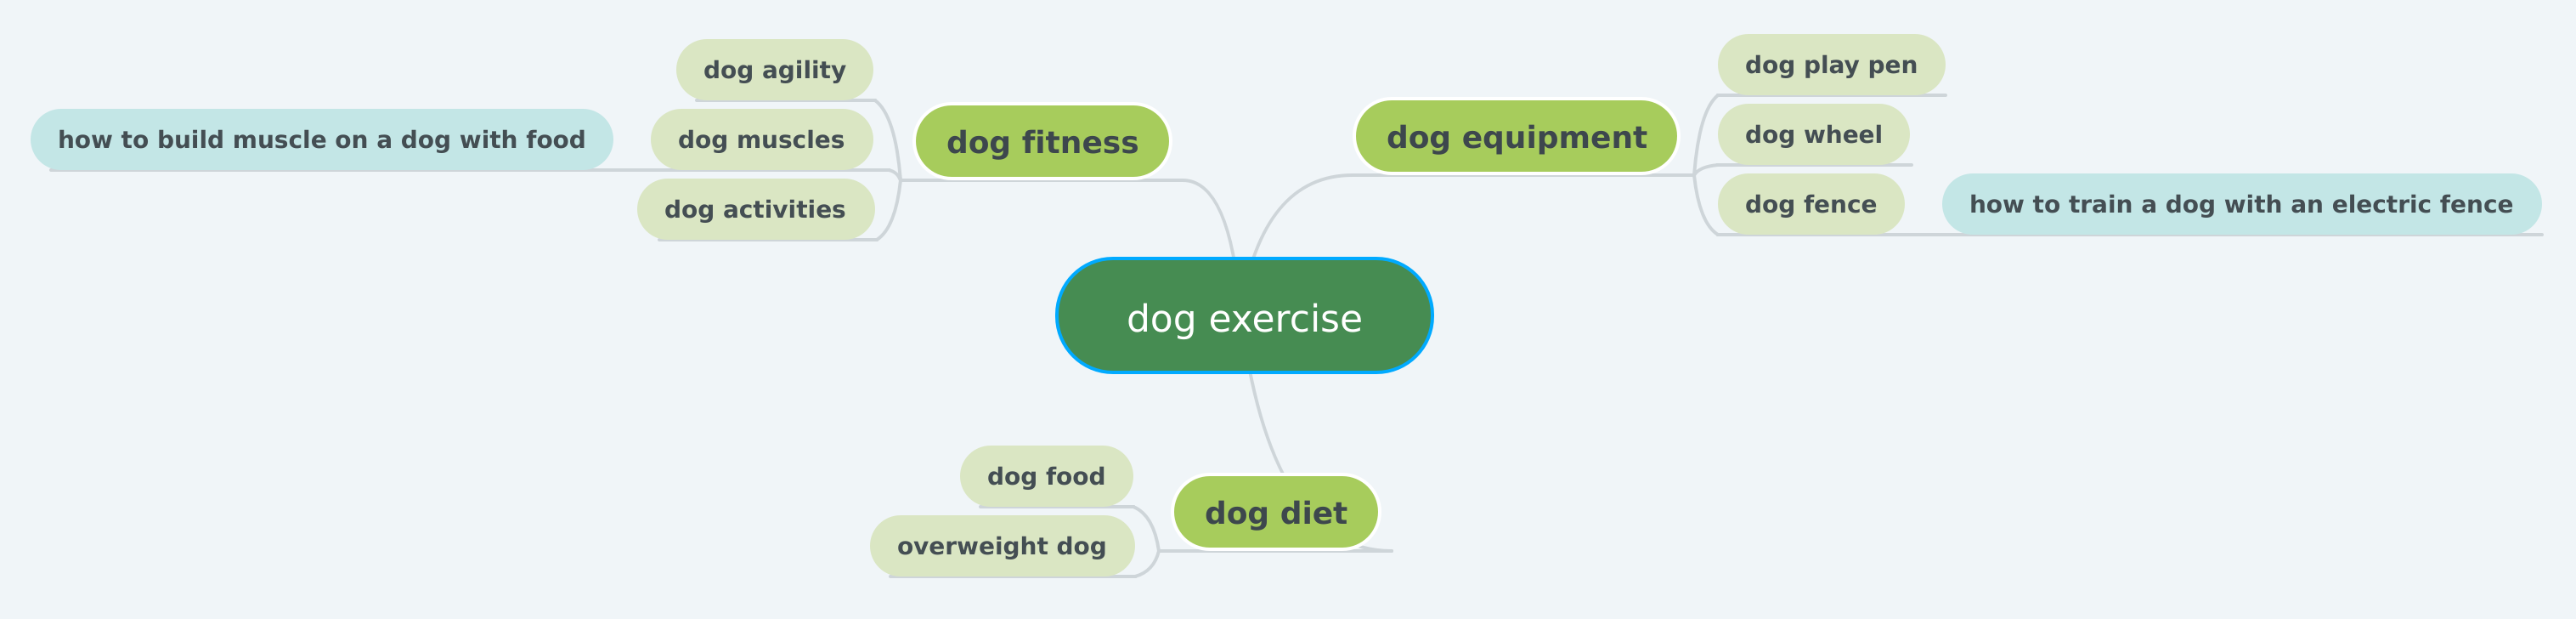 dog exercise topics map